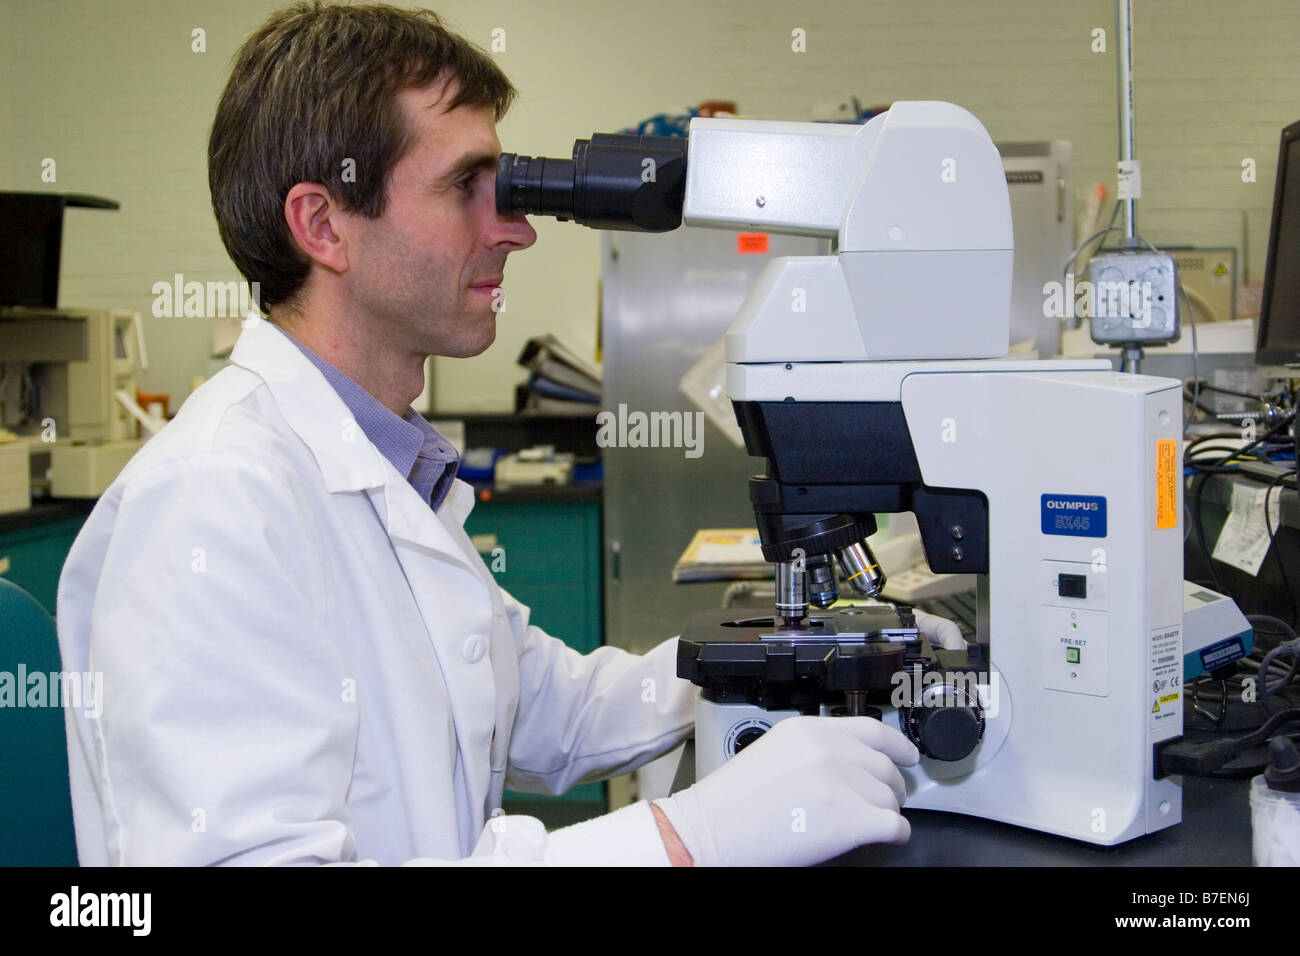 Laboratory technician looks through a microscope searching – Photo Lab Technician